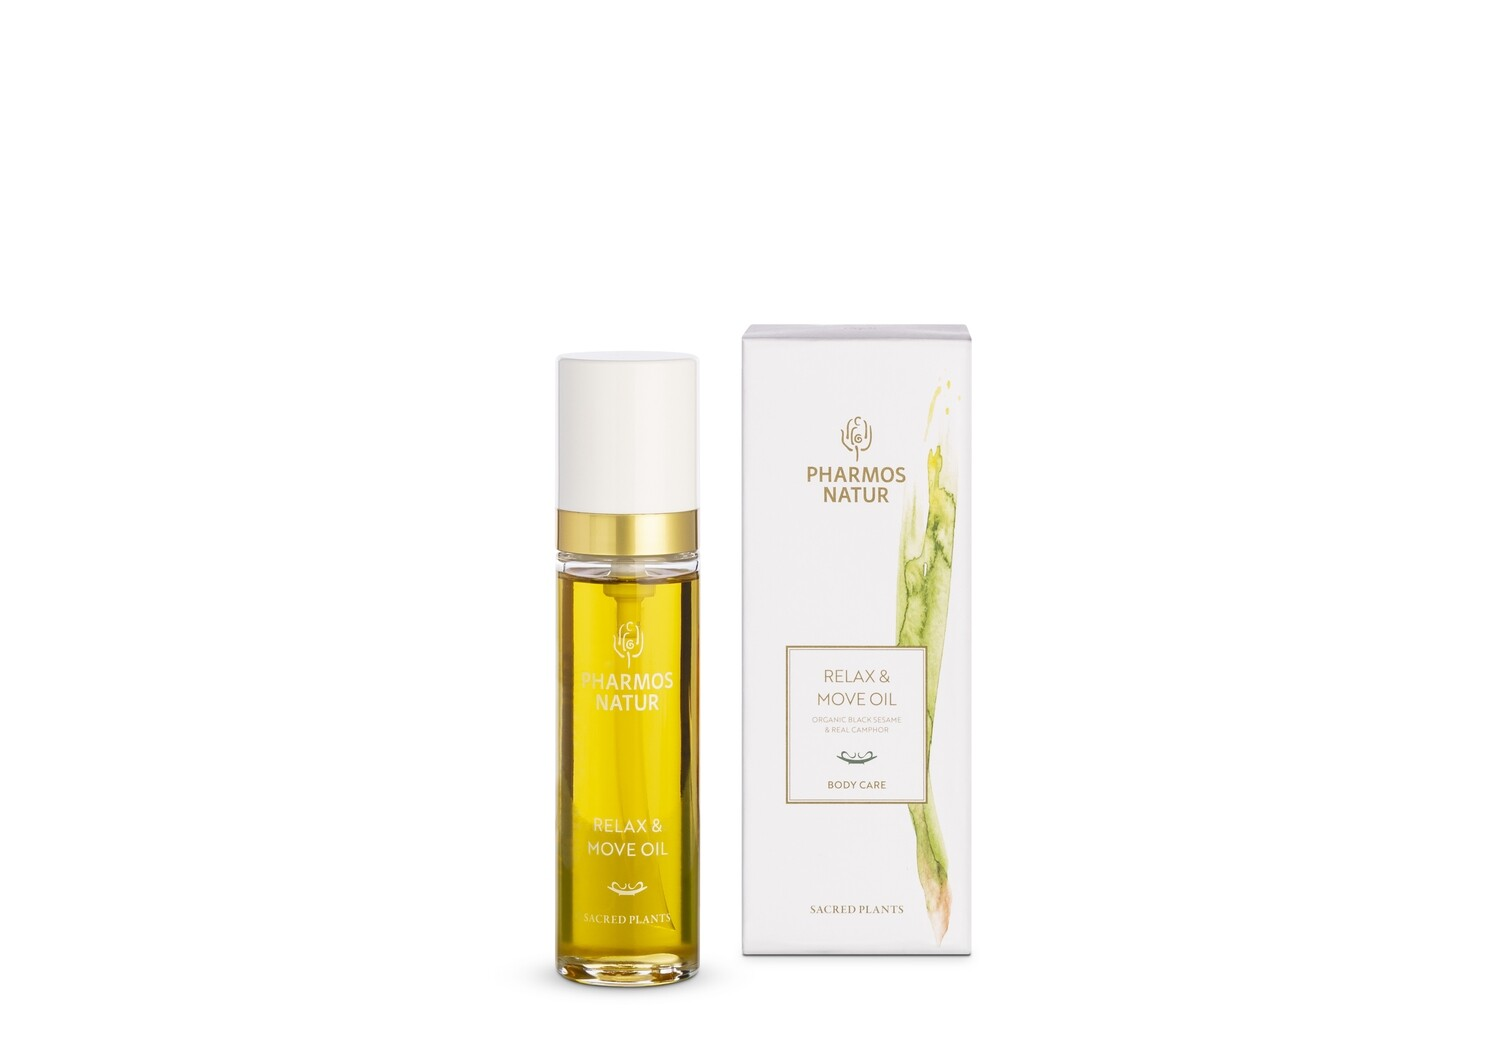 RELAX & MORE OIL - 63ml